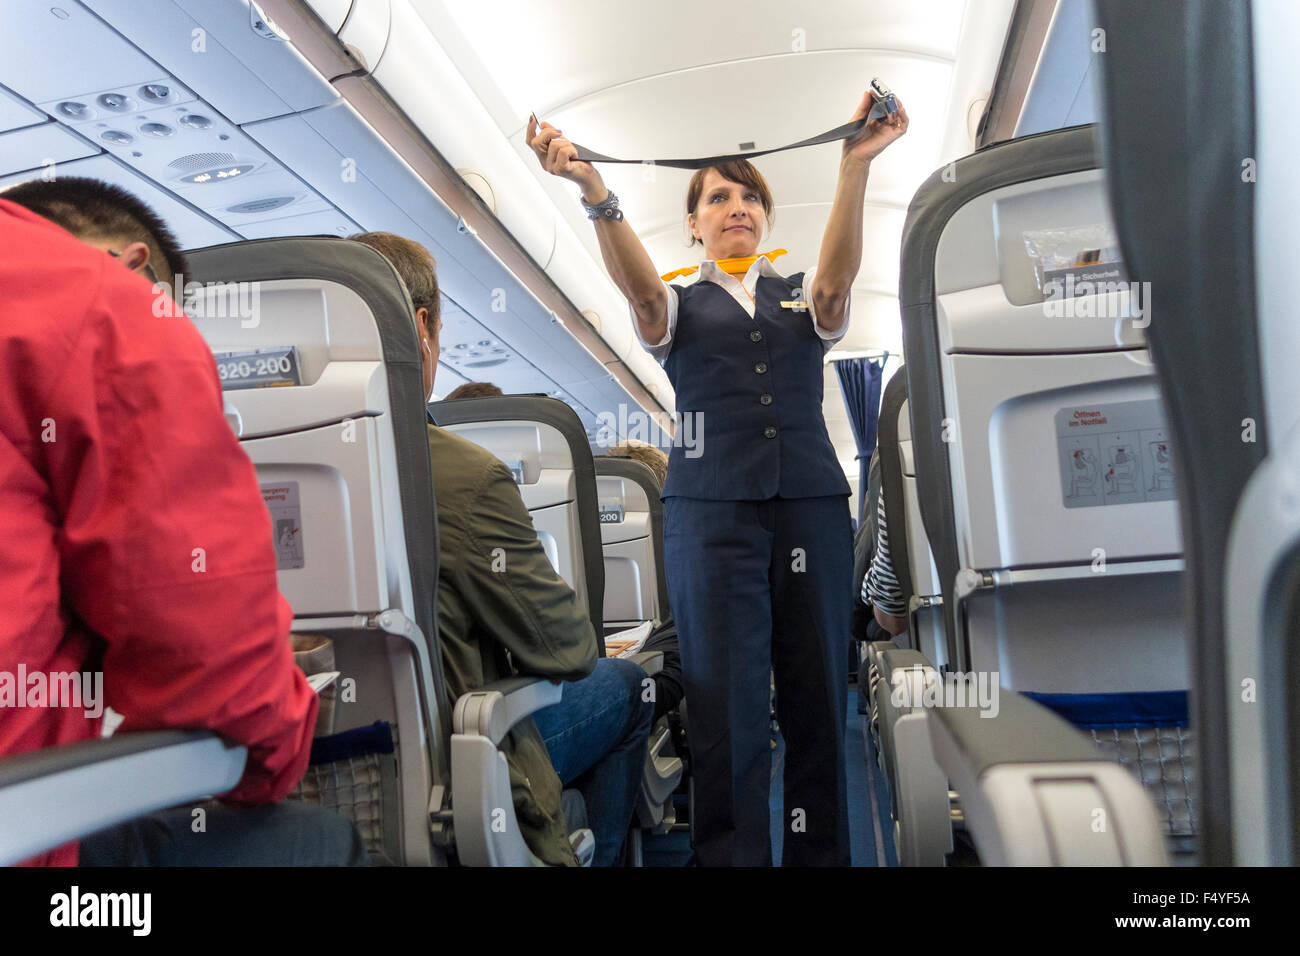 Female flight attendant demonstrating safety belt during safety instructions on Lufthansa plane - Stock Image